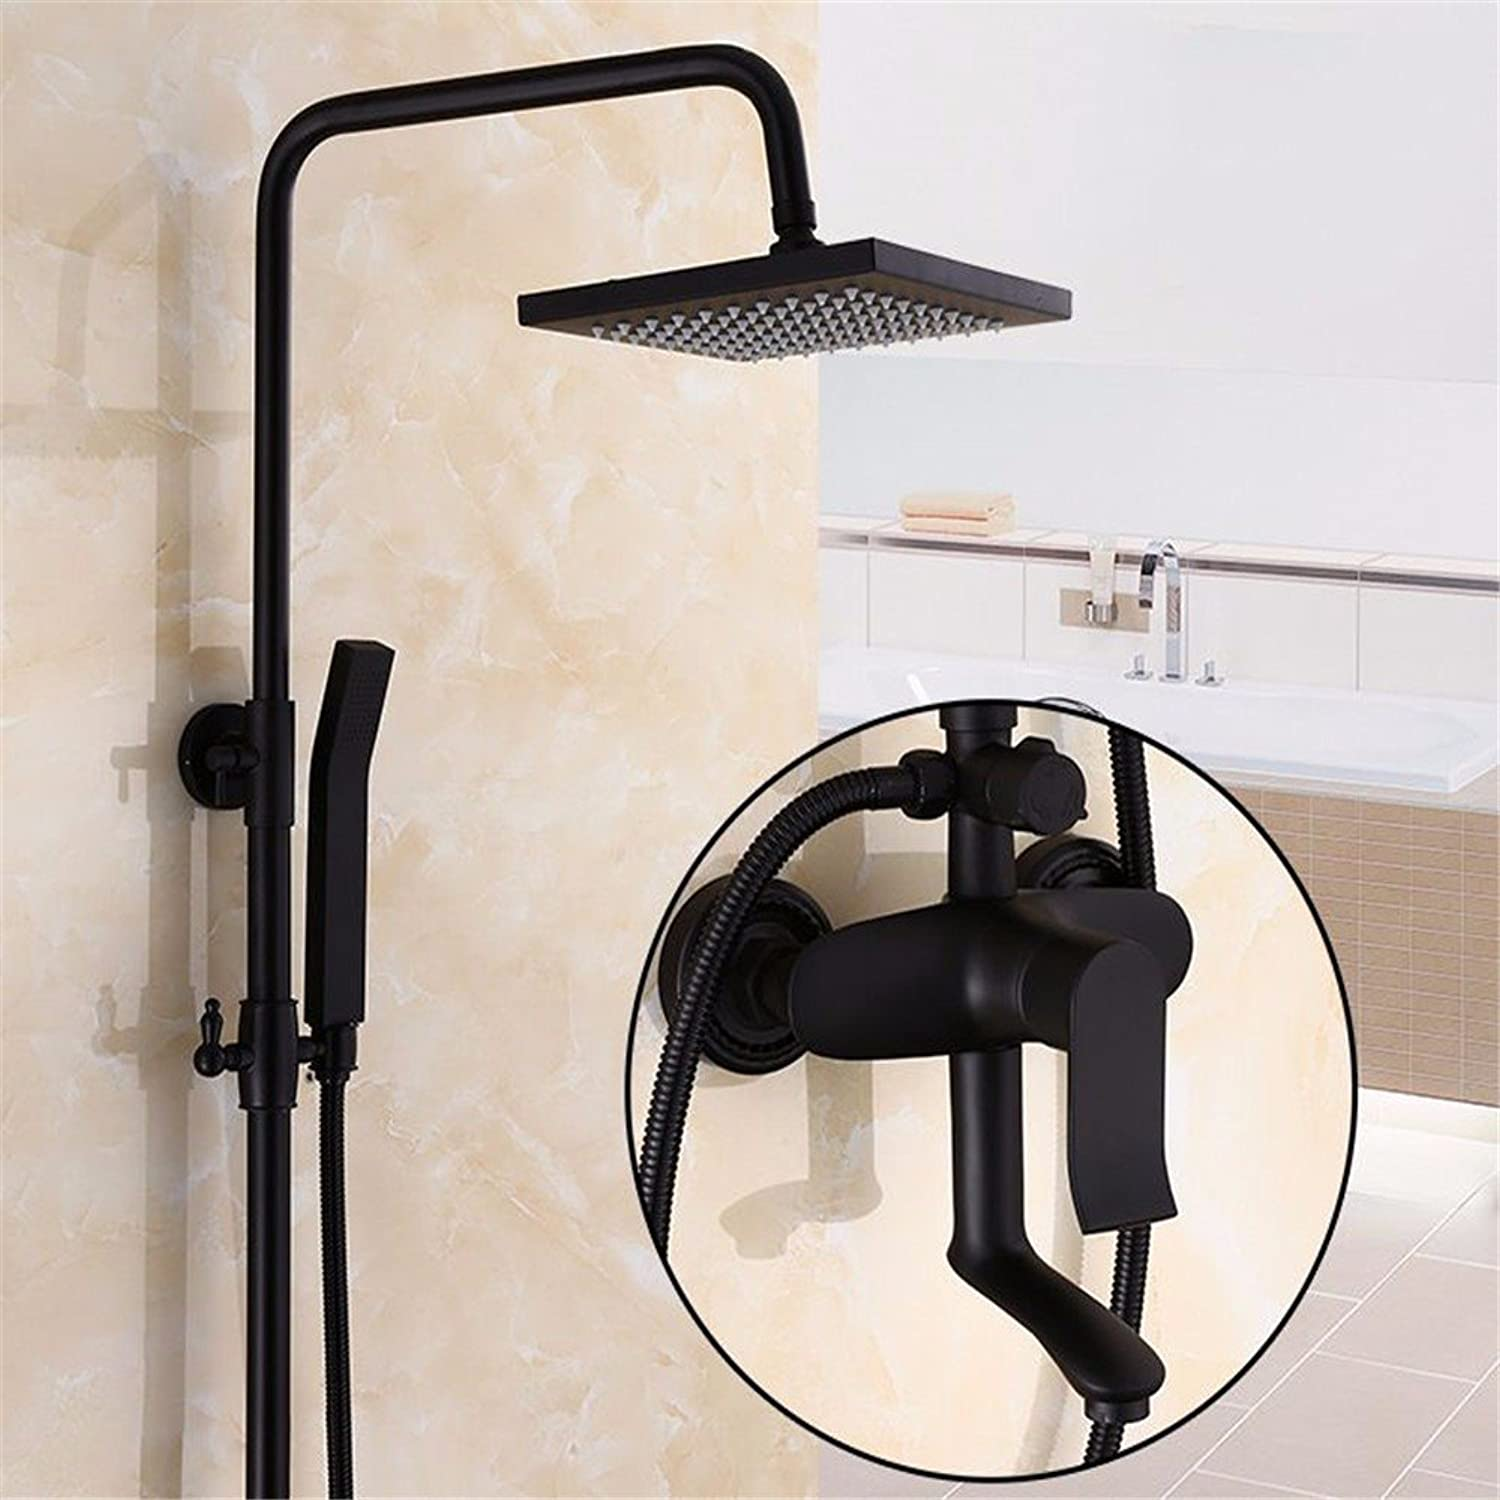 European-style black shower faucet supercharged bathroom full copper wall-mounted shower set, I